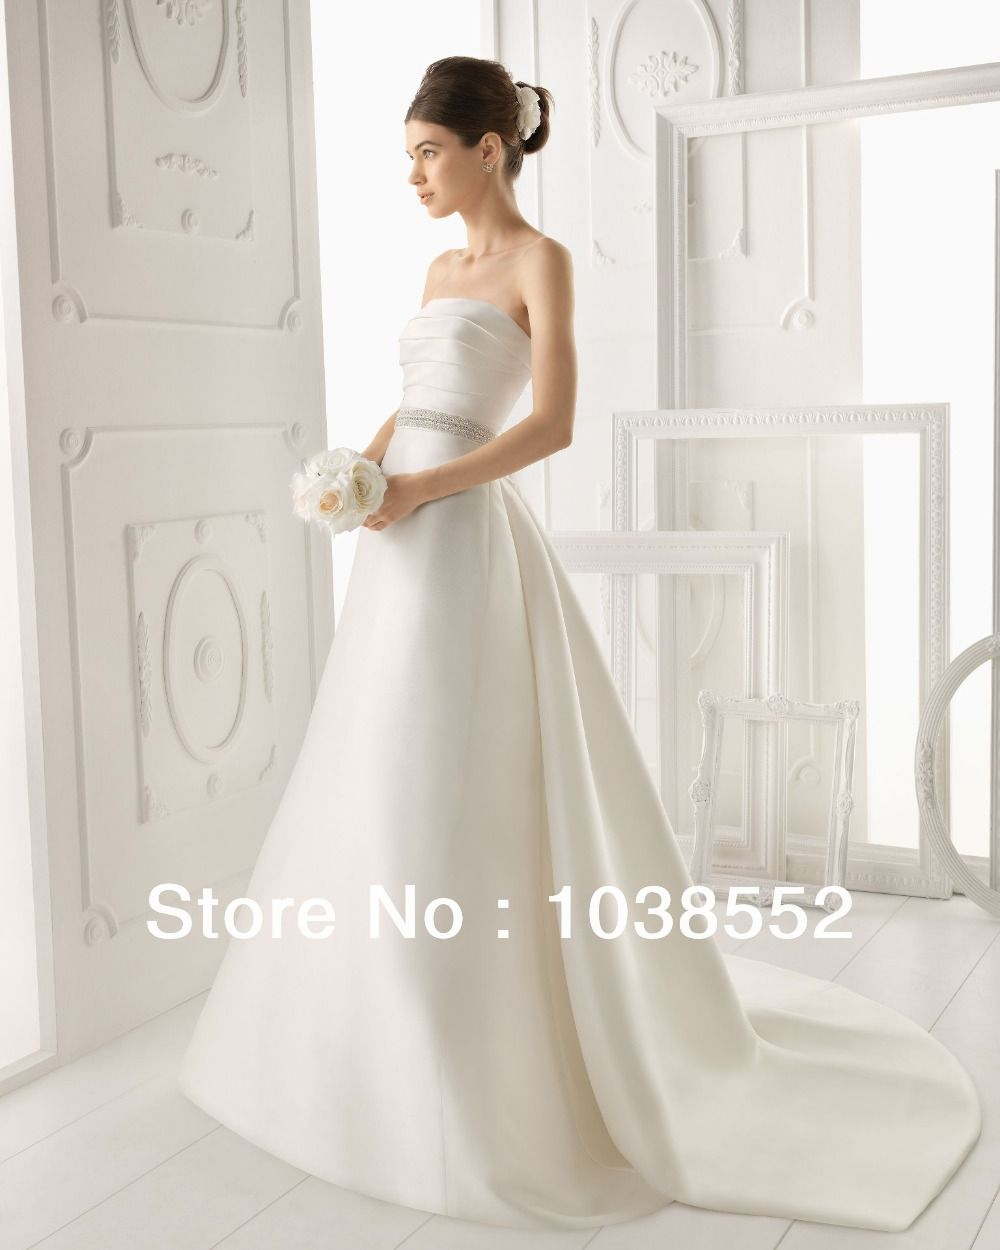 Sexy Aire Barcelona Wedding Dresses With Off-Shoulder 1/2 Long Sleeve A-Line Gorgeous Bridal Gowns Crystle Sash $155.00